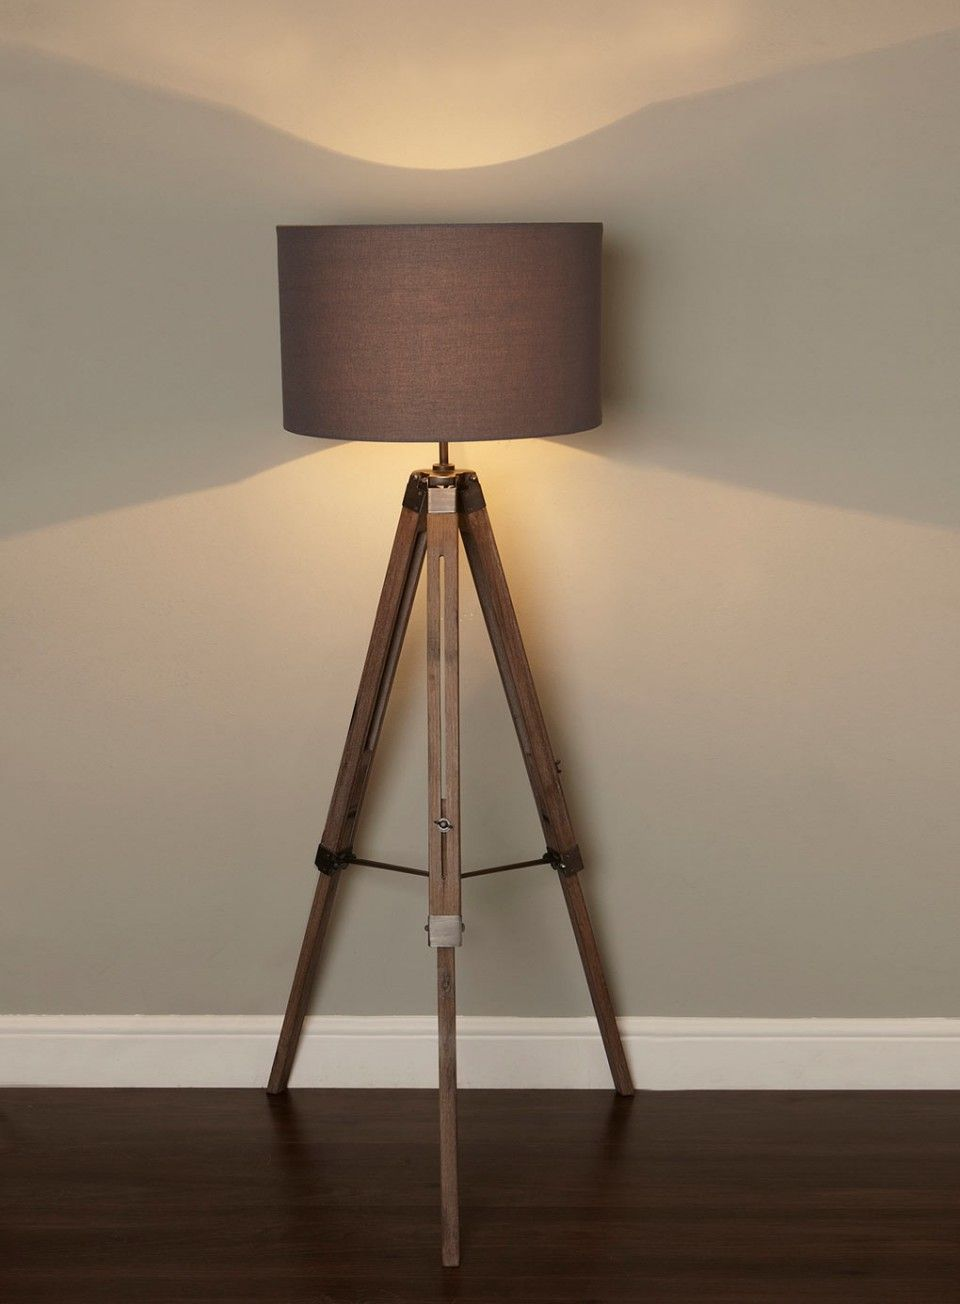 Captivating Harley Tripod Floor Lamp With Wooden Tripod